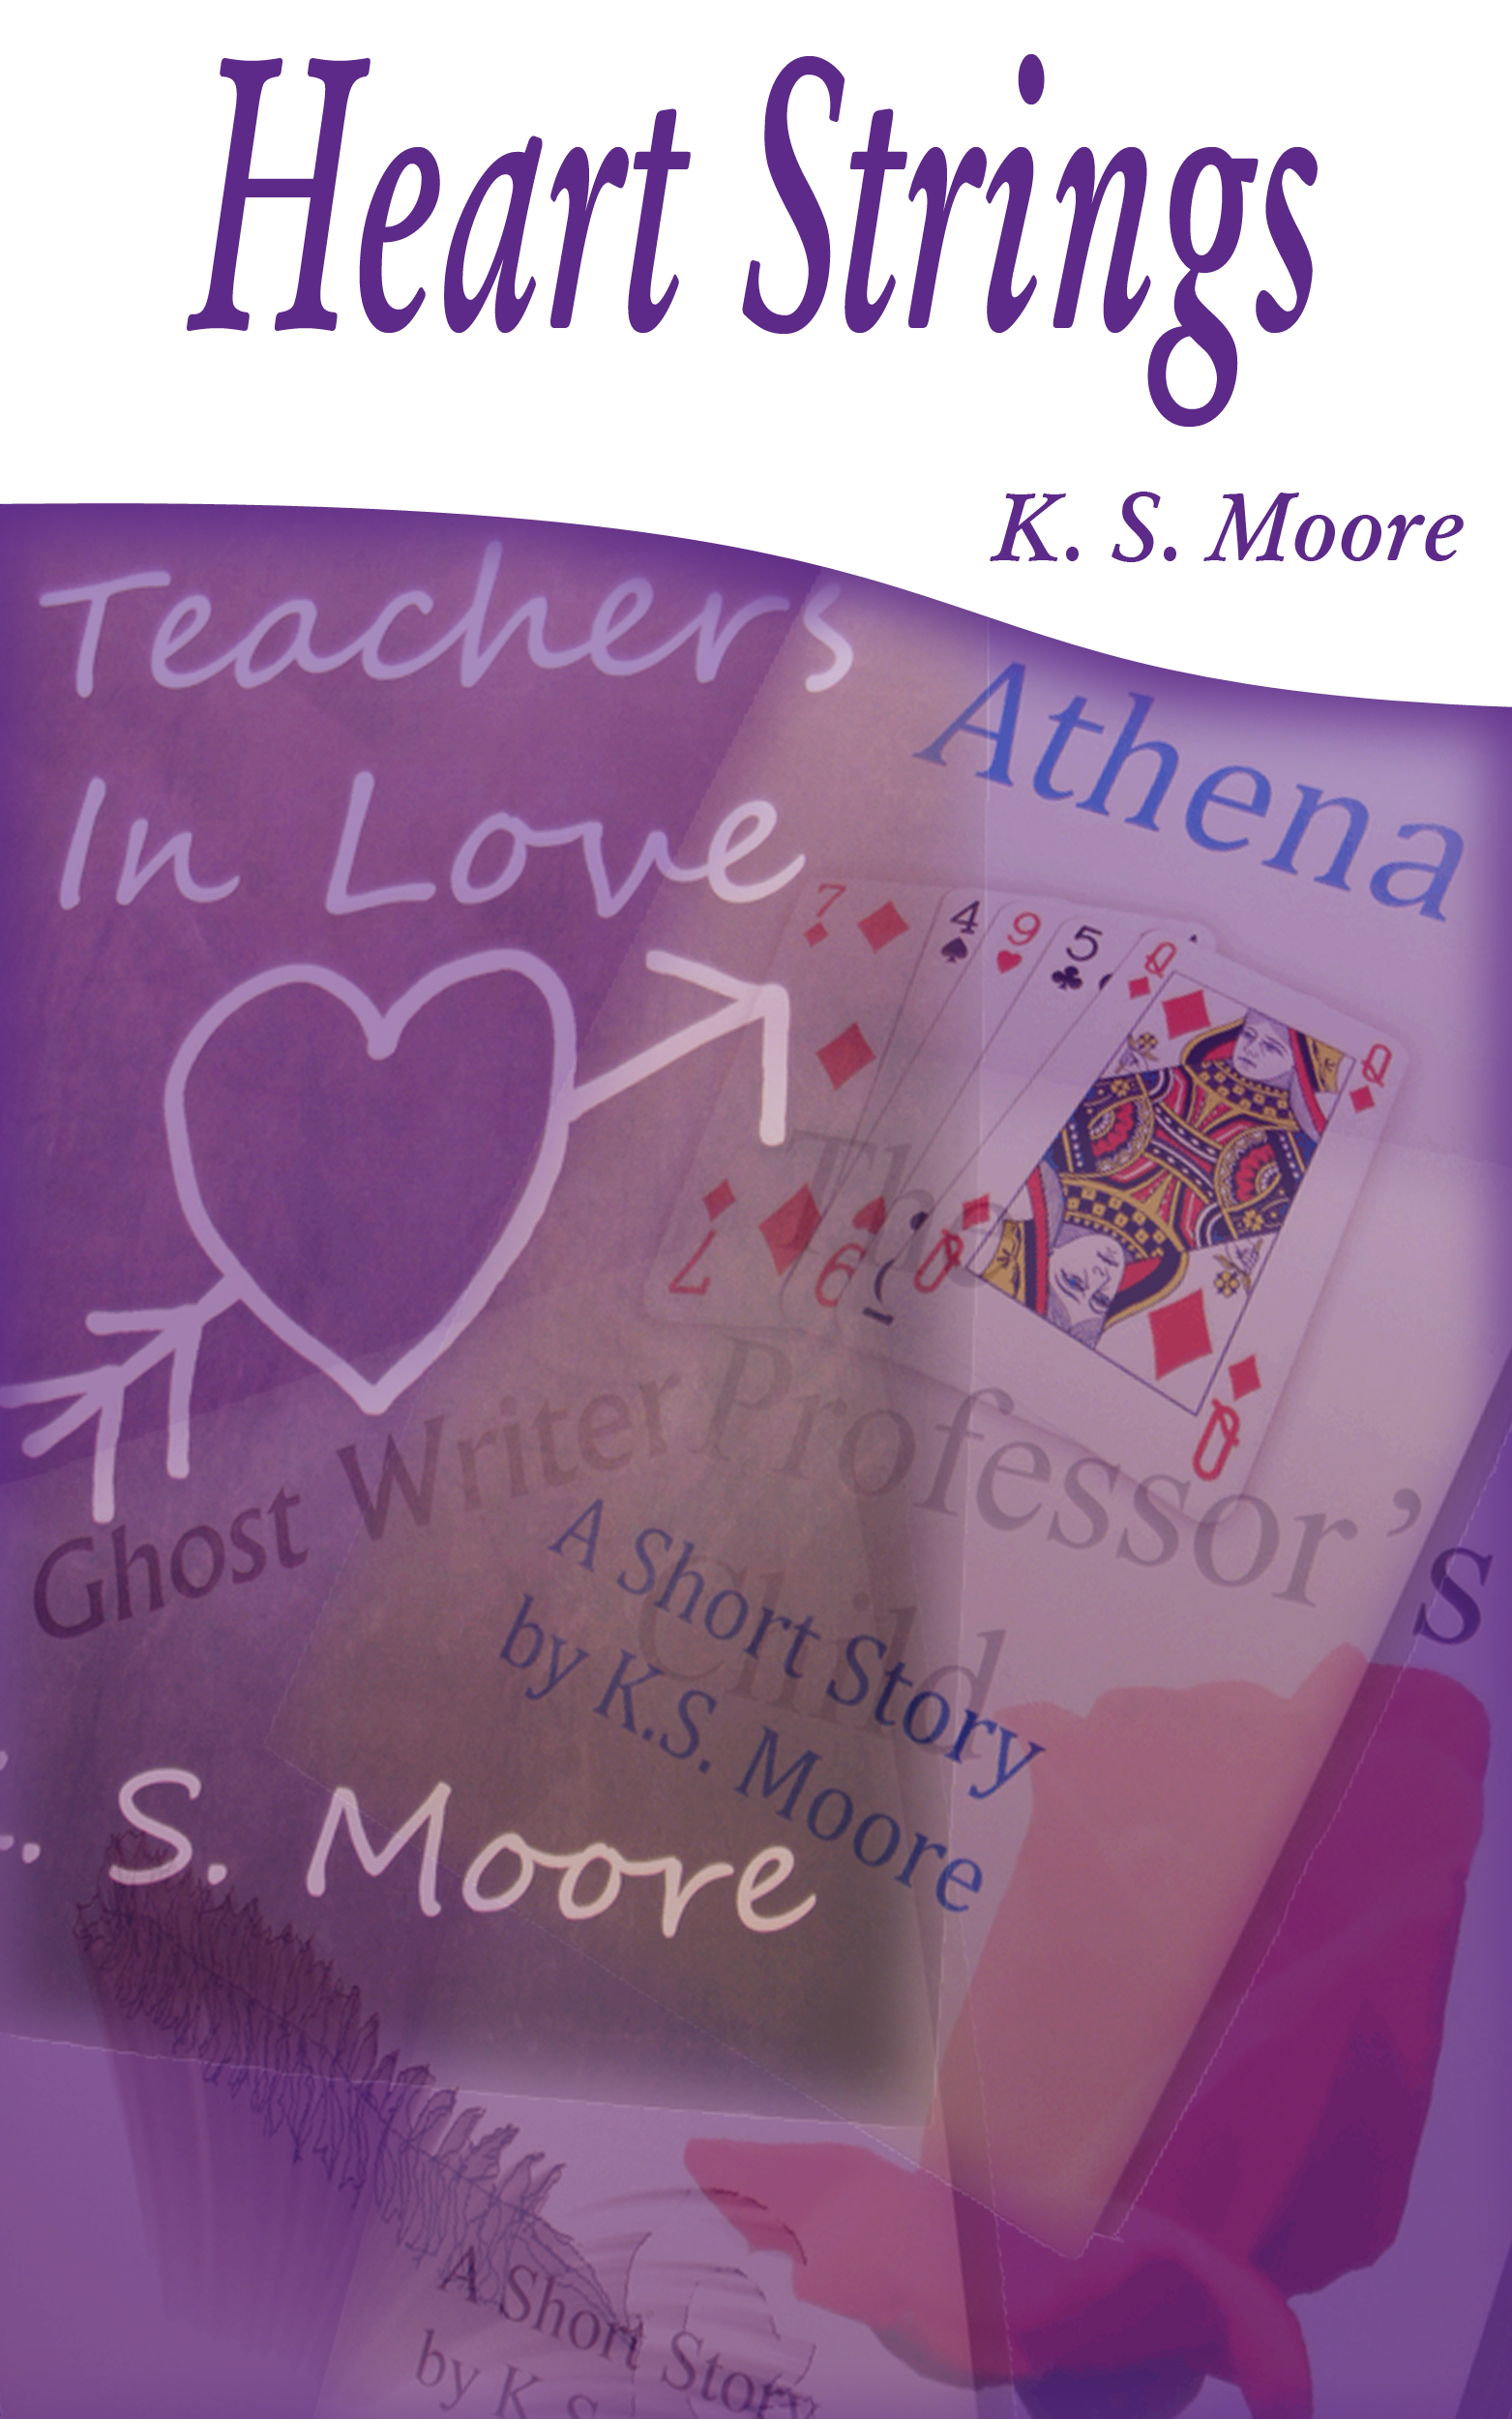 Cover Image for new ebook collection of short stories: 'Heart Strings' by K. S. Moore.